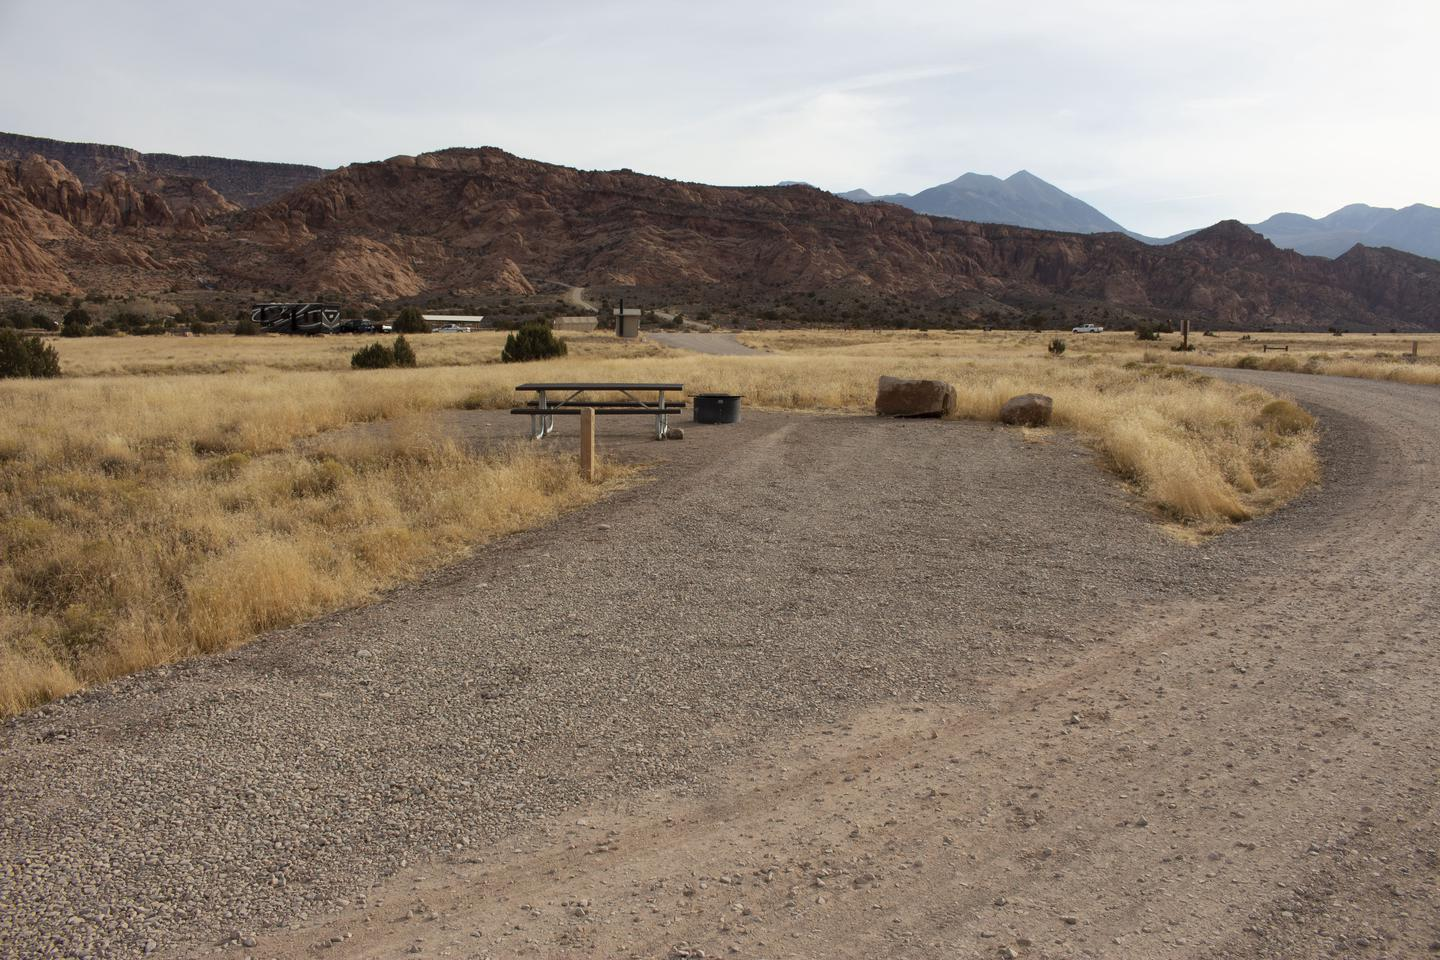 Camp site parking area, picnic table and fire ring with red rock cliffs and mountains in the background.